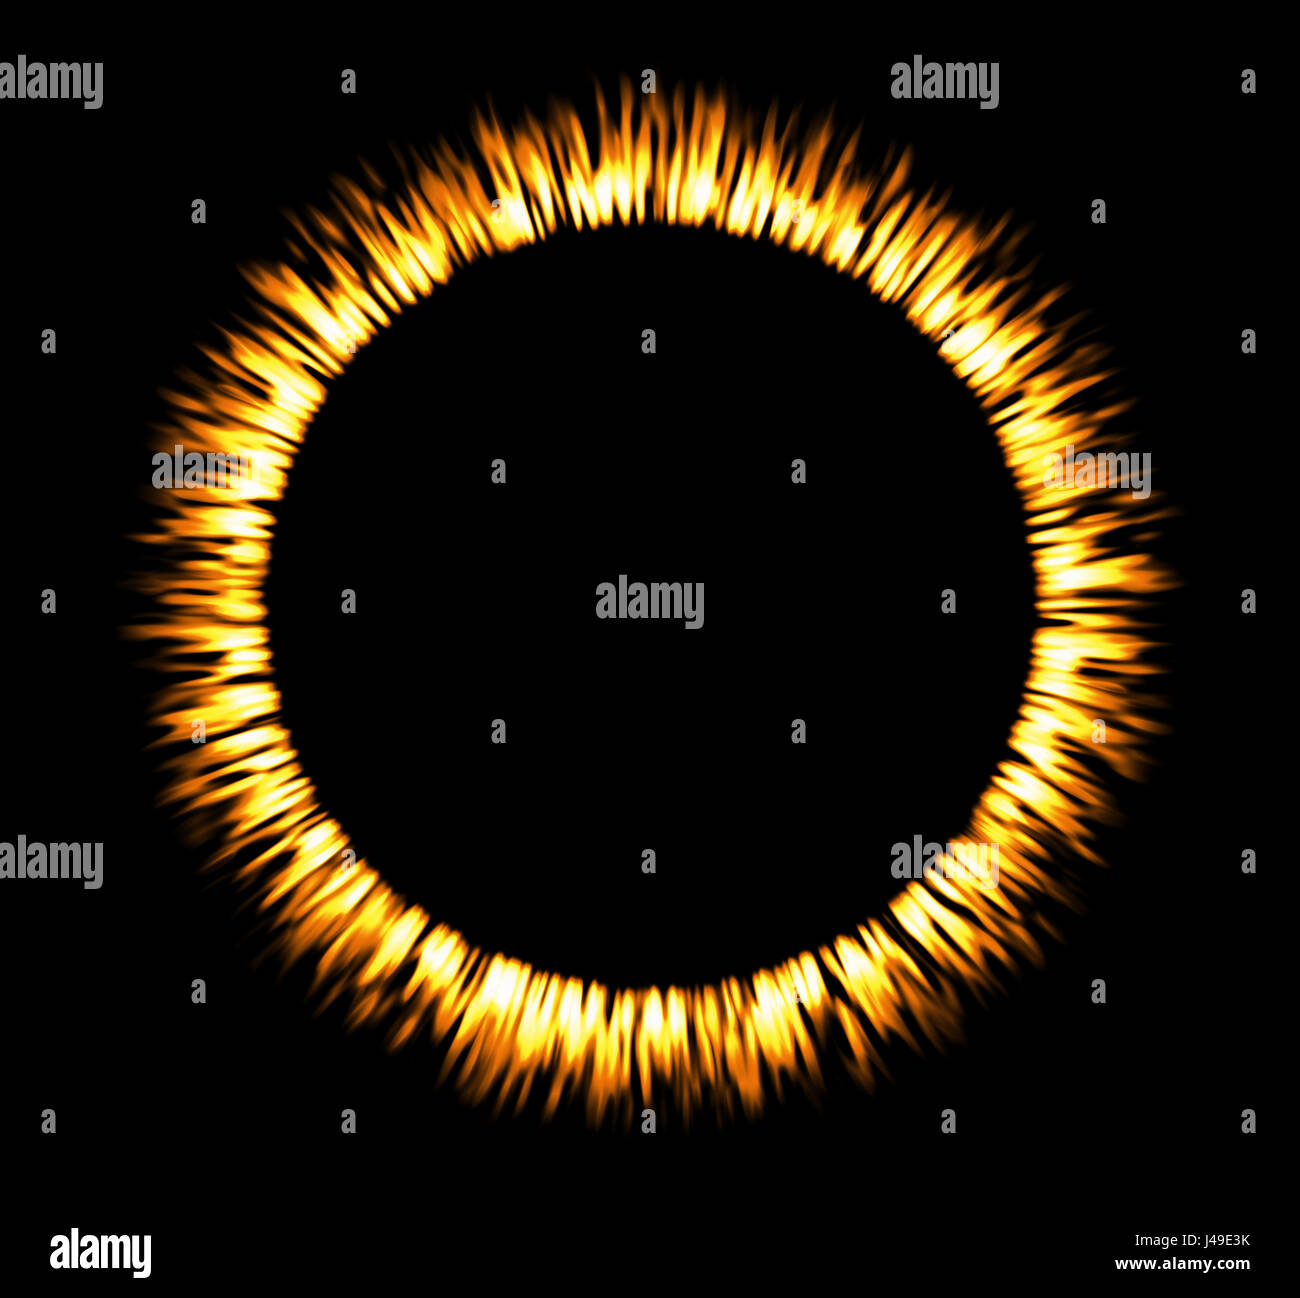 Round fire frame. Fire eclipse or fire swirl - Stock Image